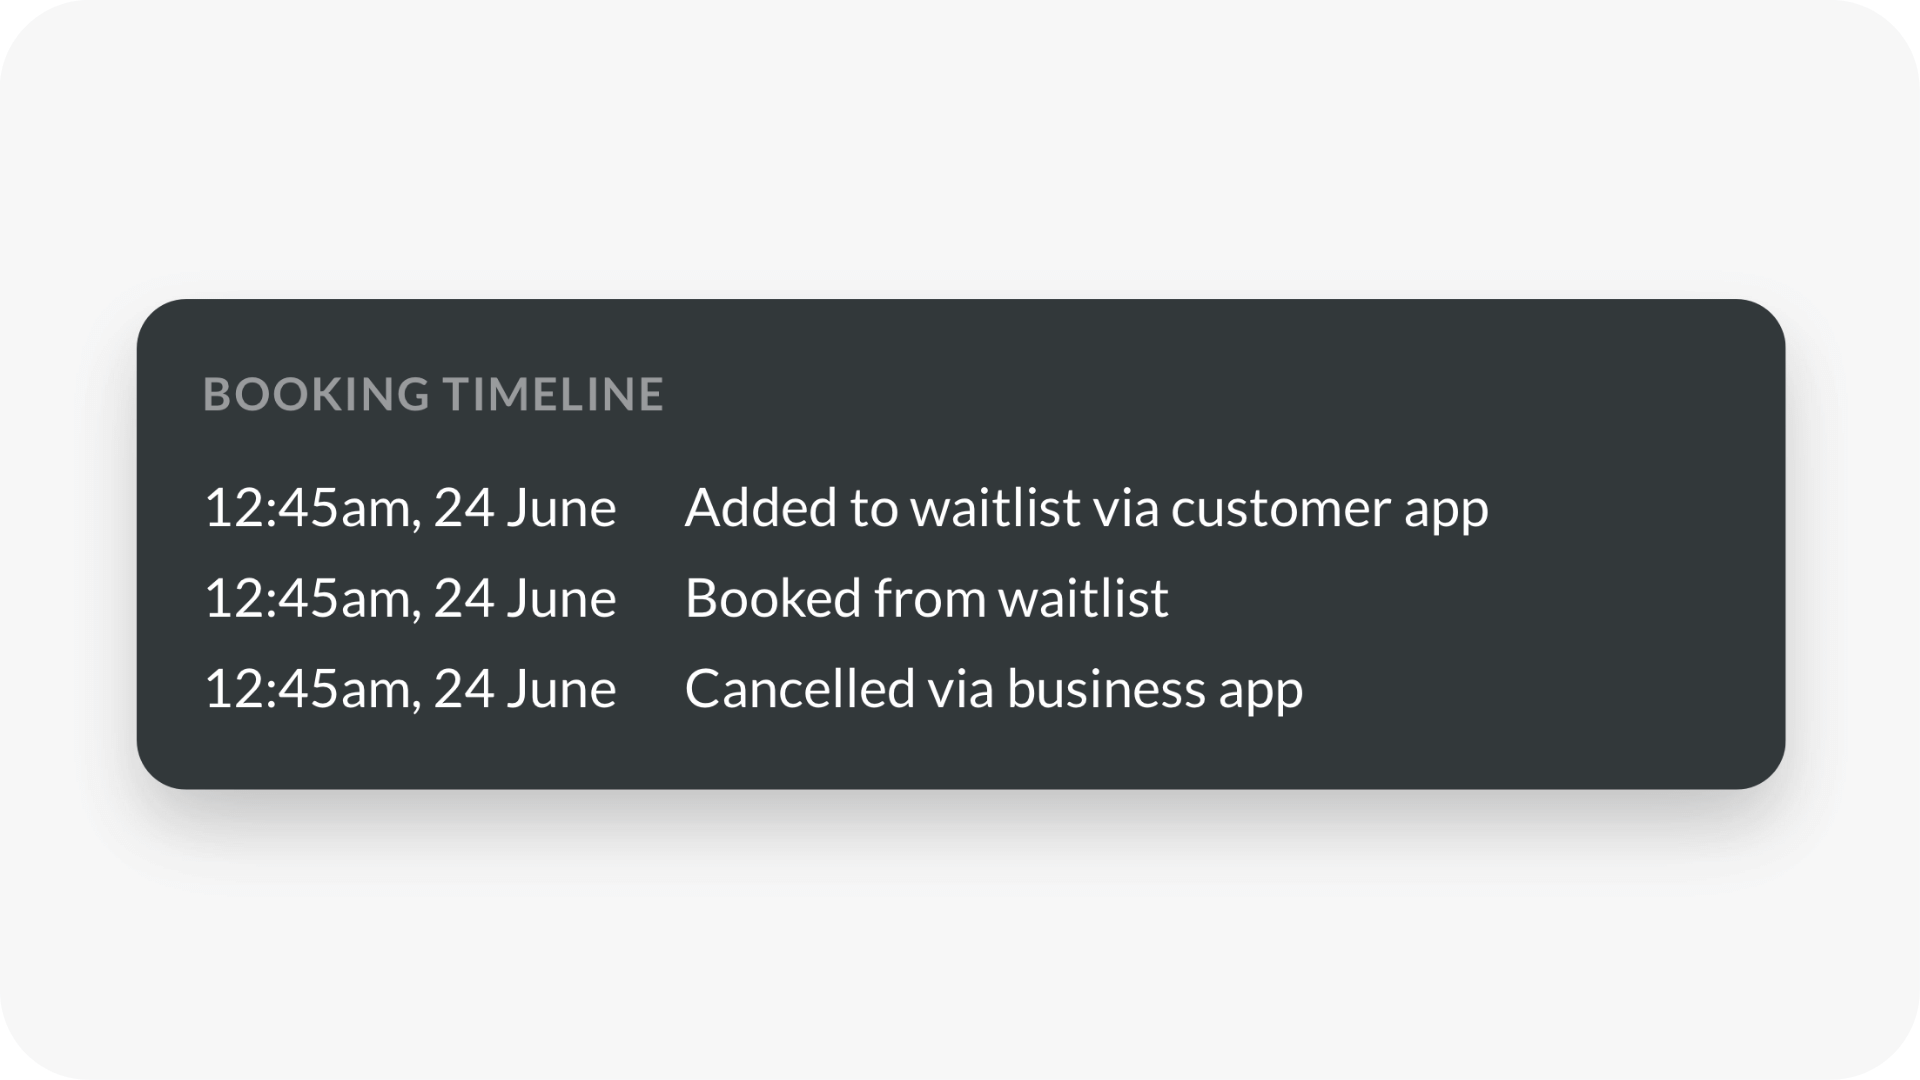 Beta testing view of client's booking timeline available in every customer's profile